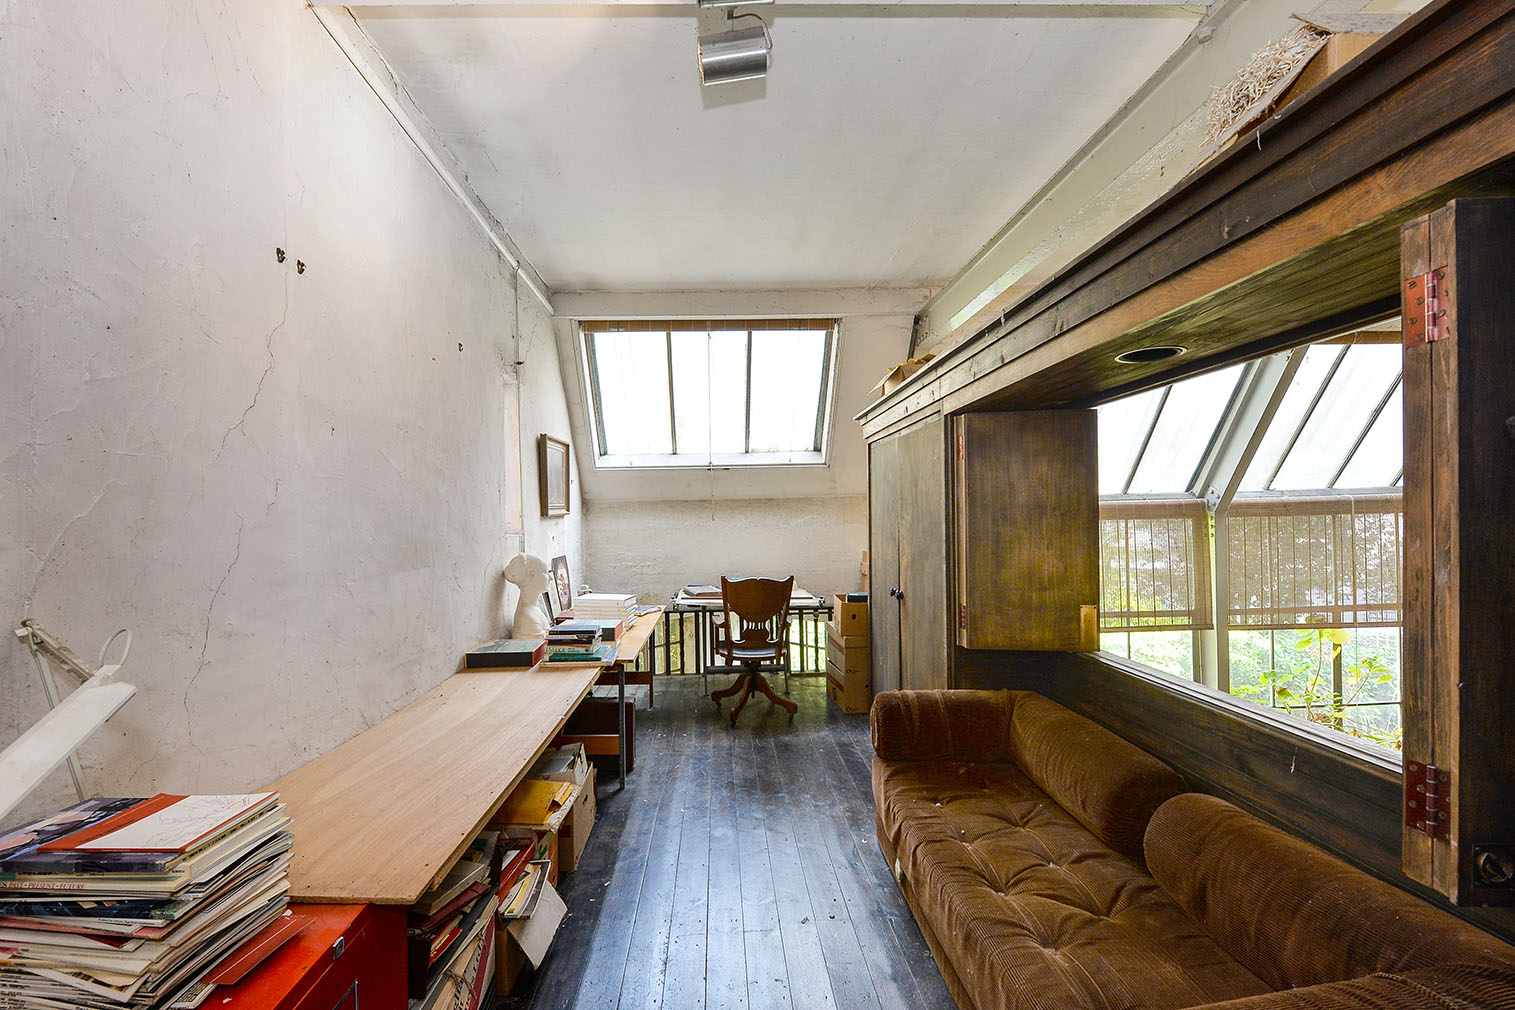 Grive End Road property Converted from a sculptor's studio into a family home